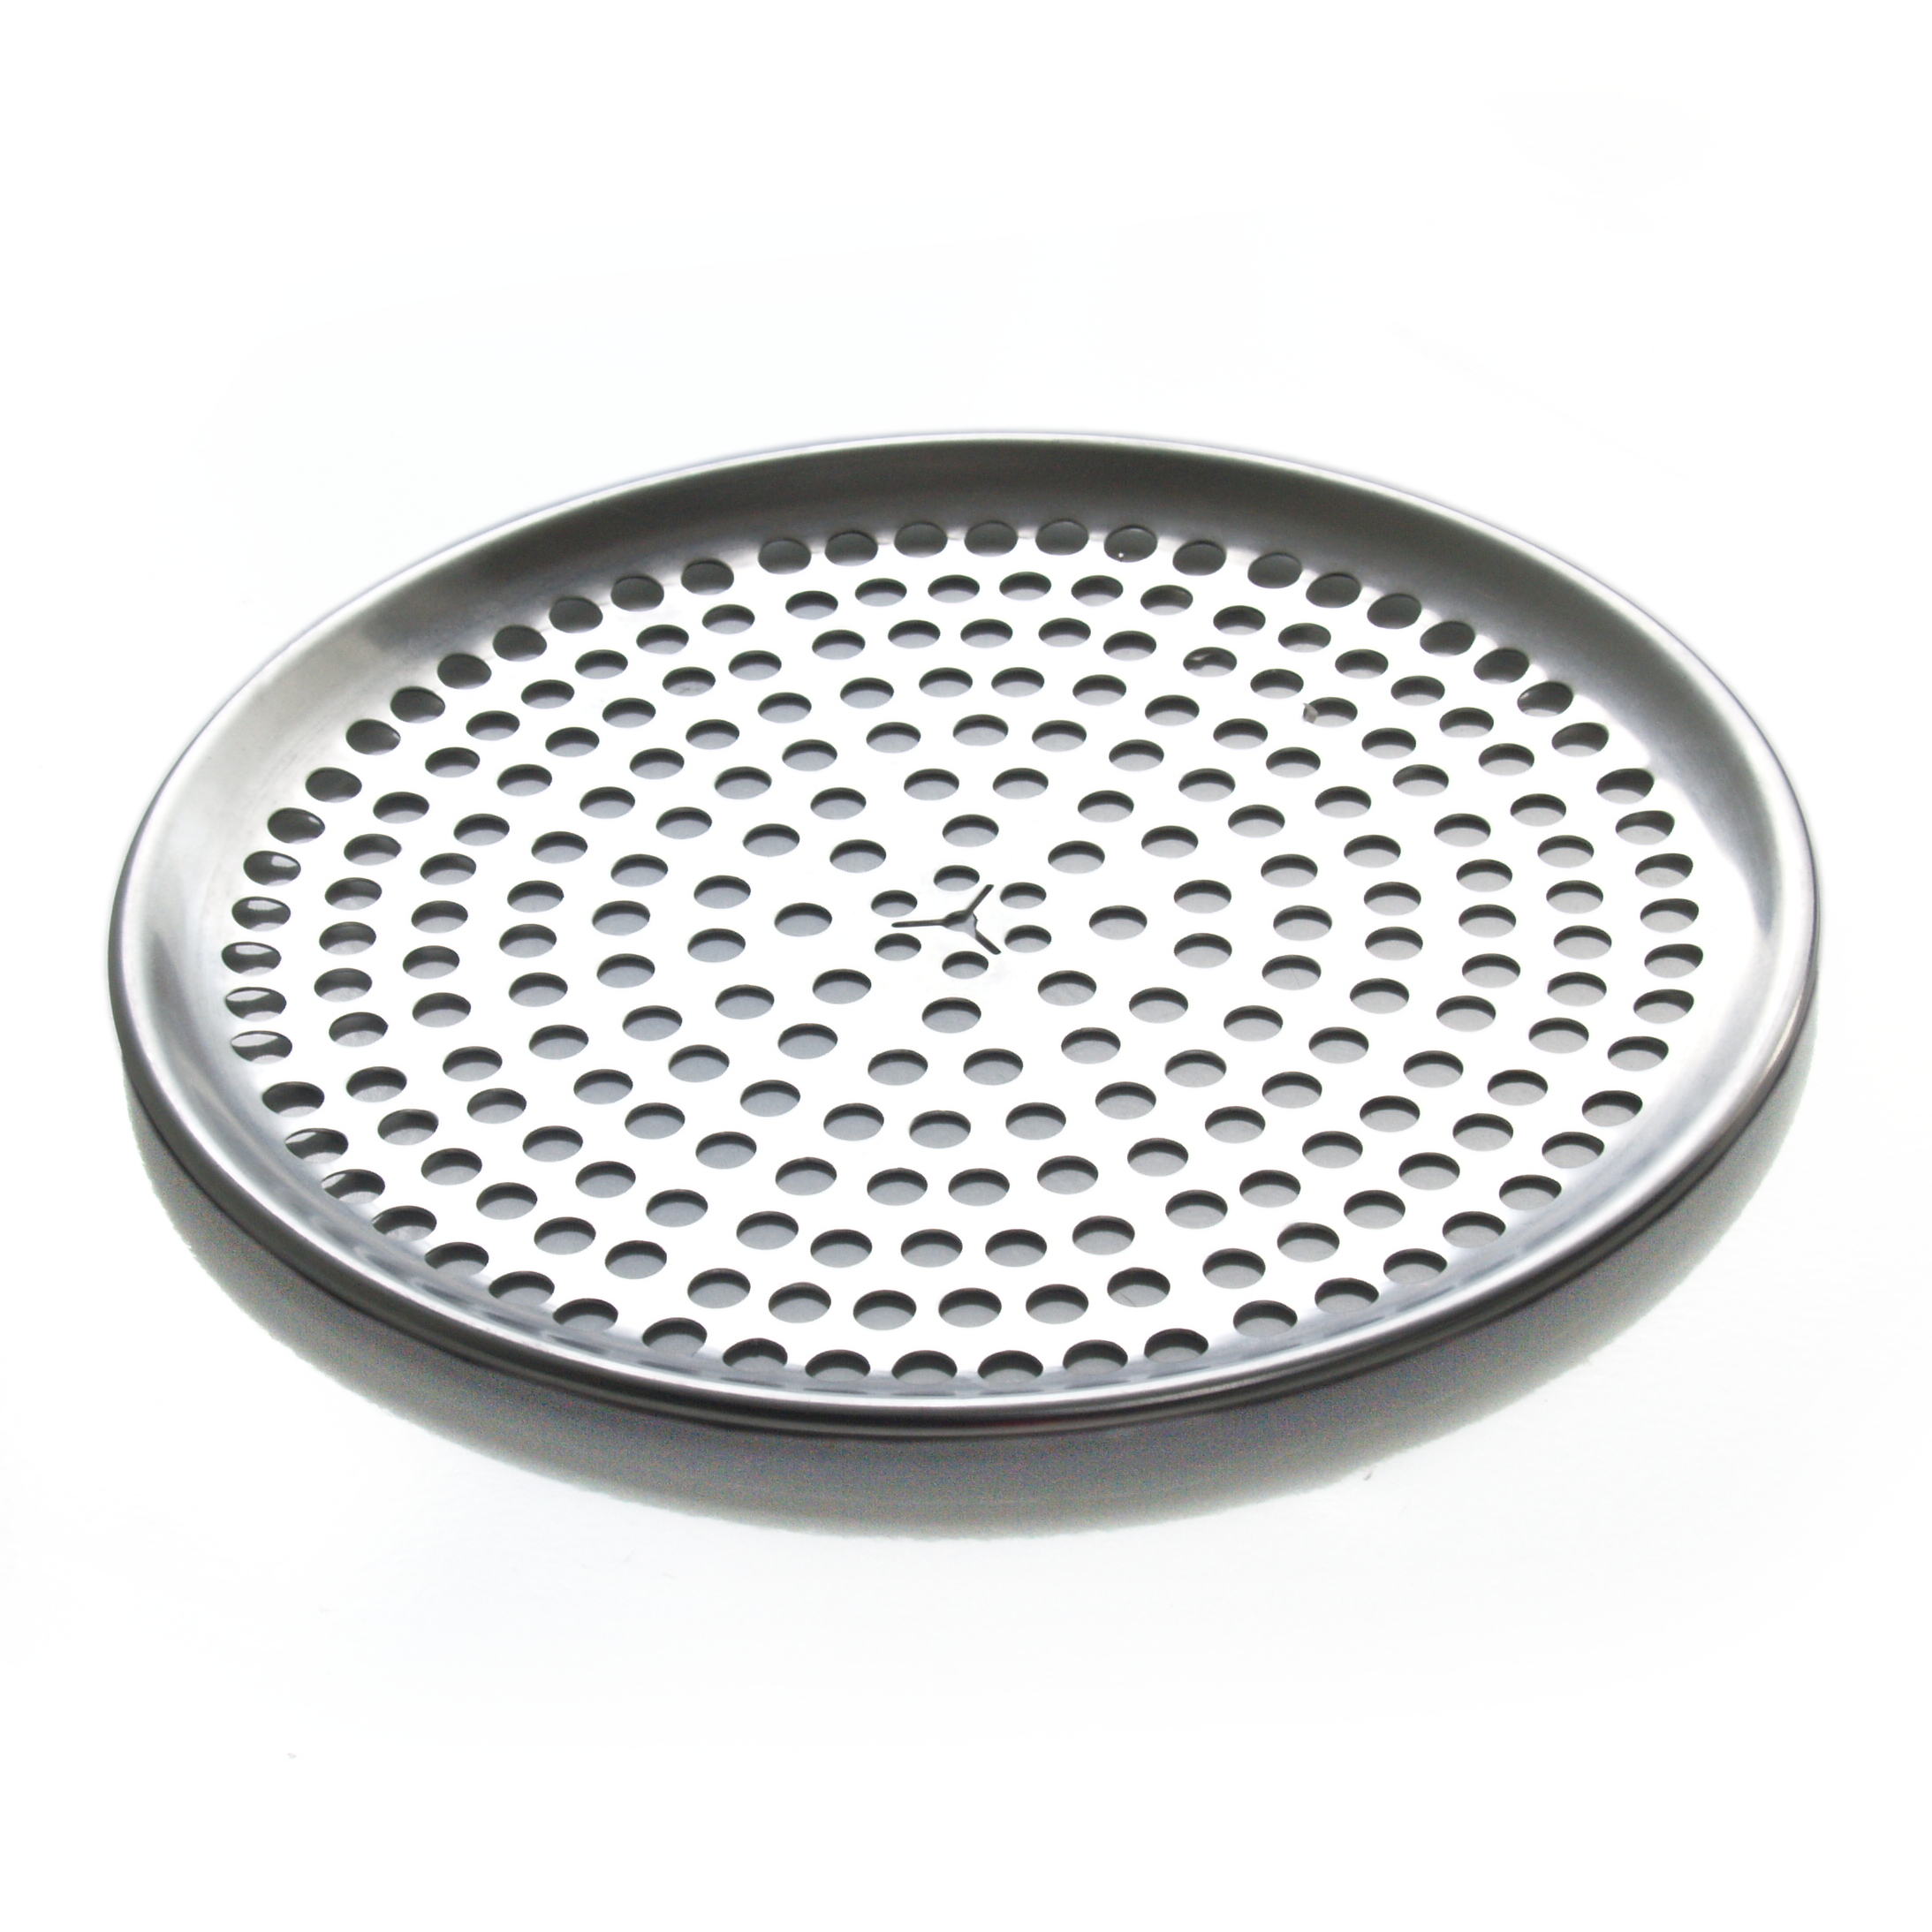 Browne Basics Aluminum Perforated Pizza Tray, 9 Inch